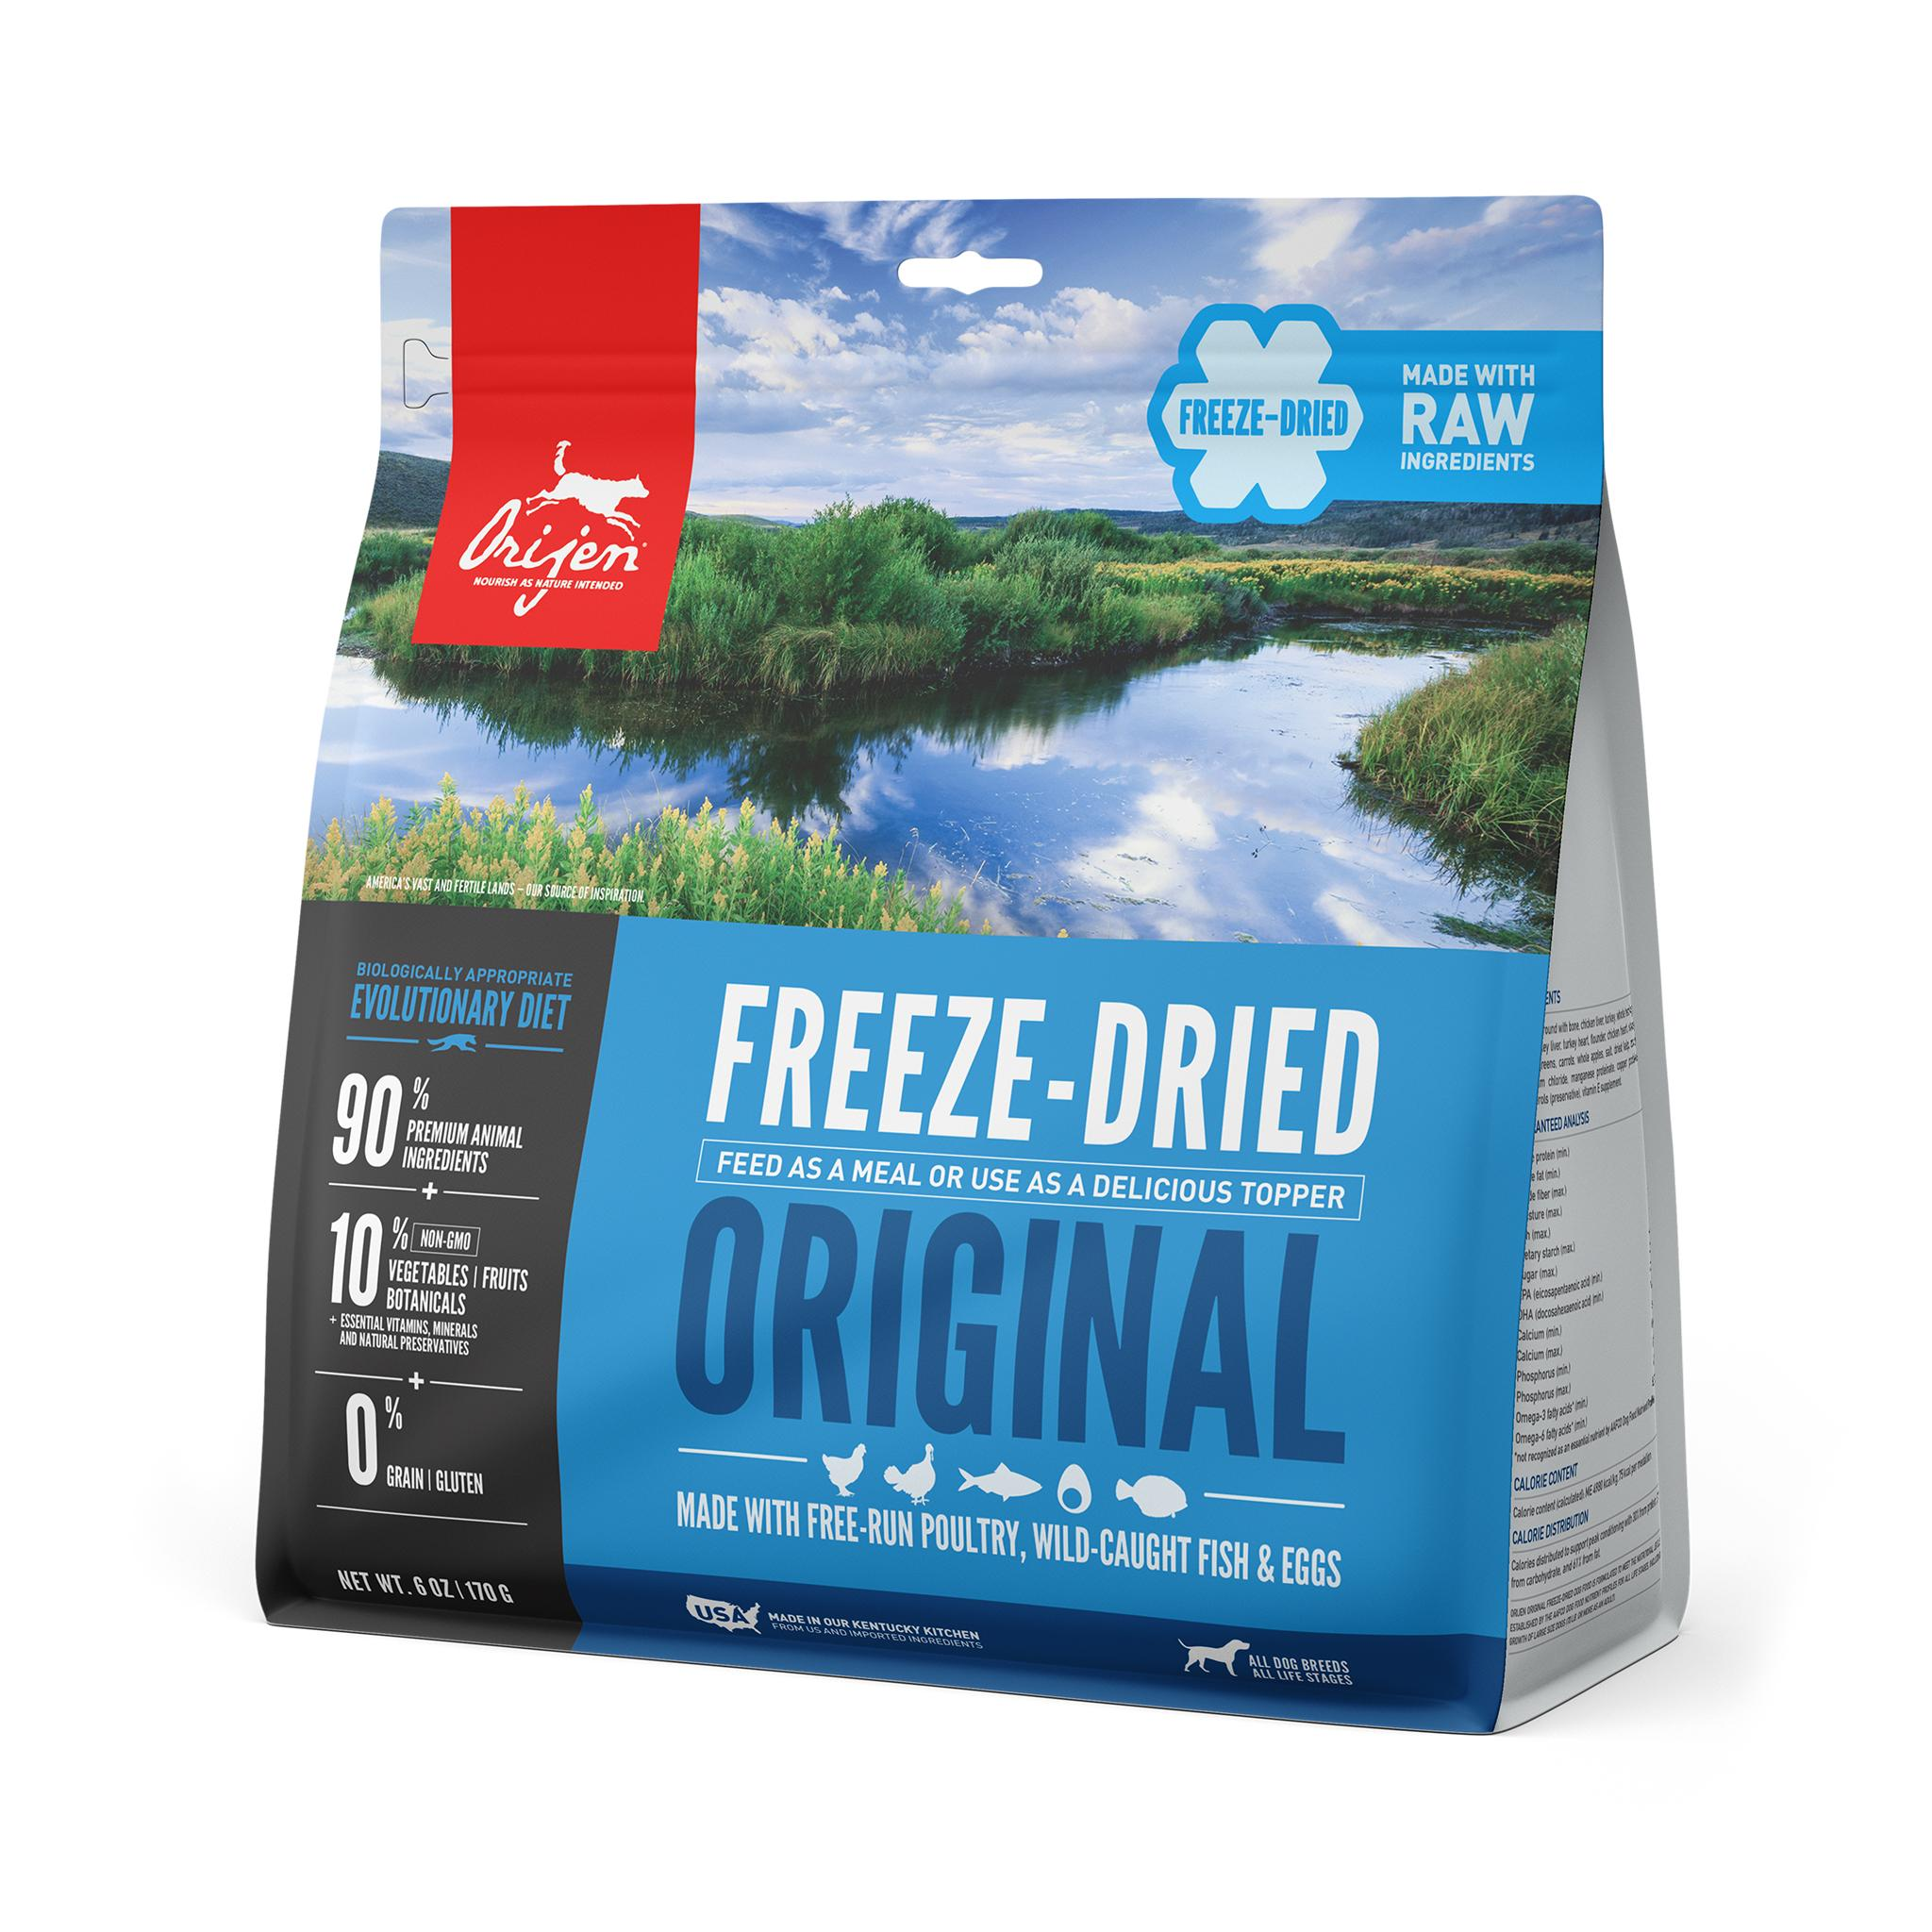 ORIJEN Original Grain-Free Freeze-Dried Dog Food Image